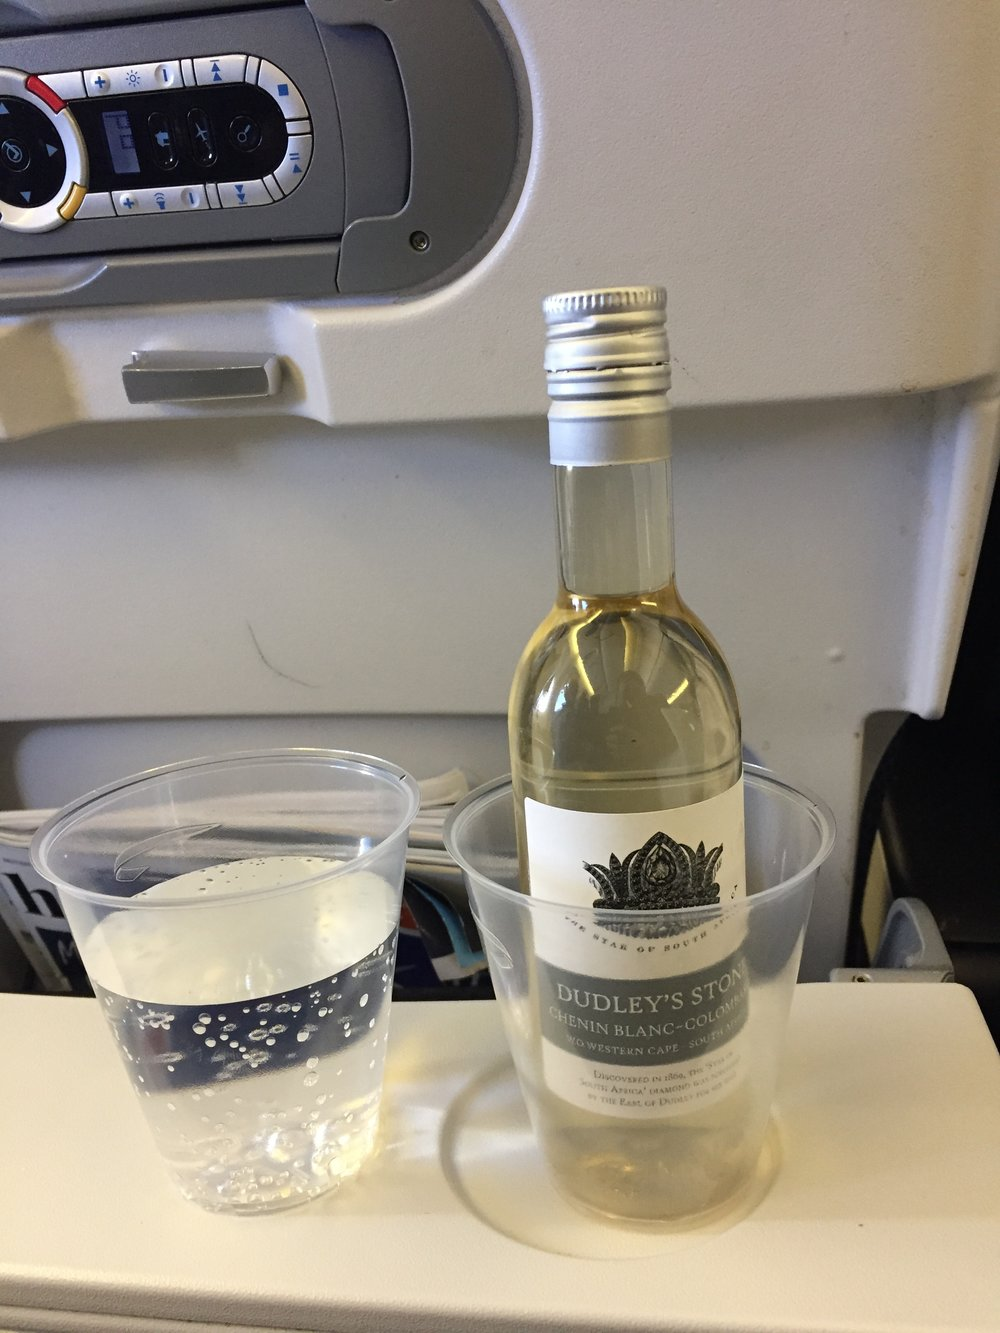 Luckily this flight had managed to preserve the complimentary food and drink service. However, although free, this was perhaps the weakest point of the whole experience, nothing to write home about